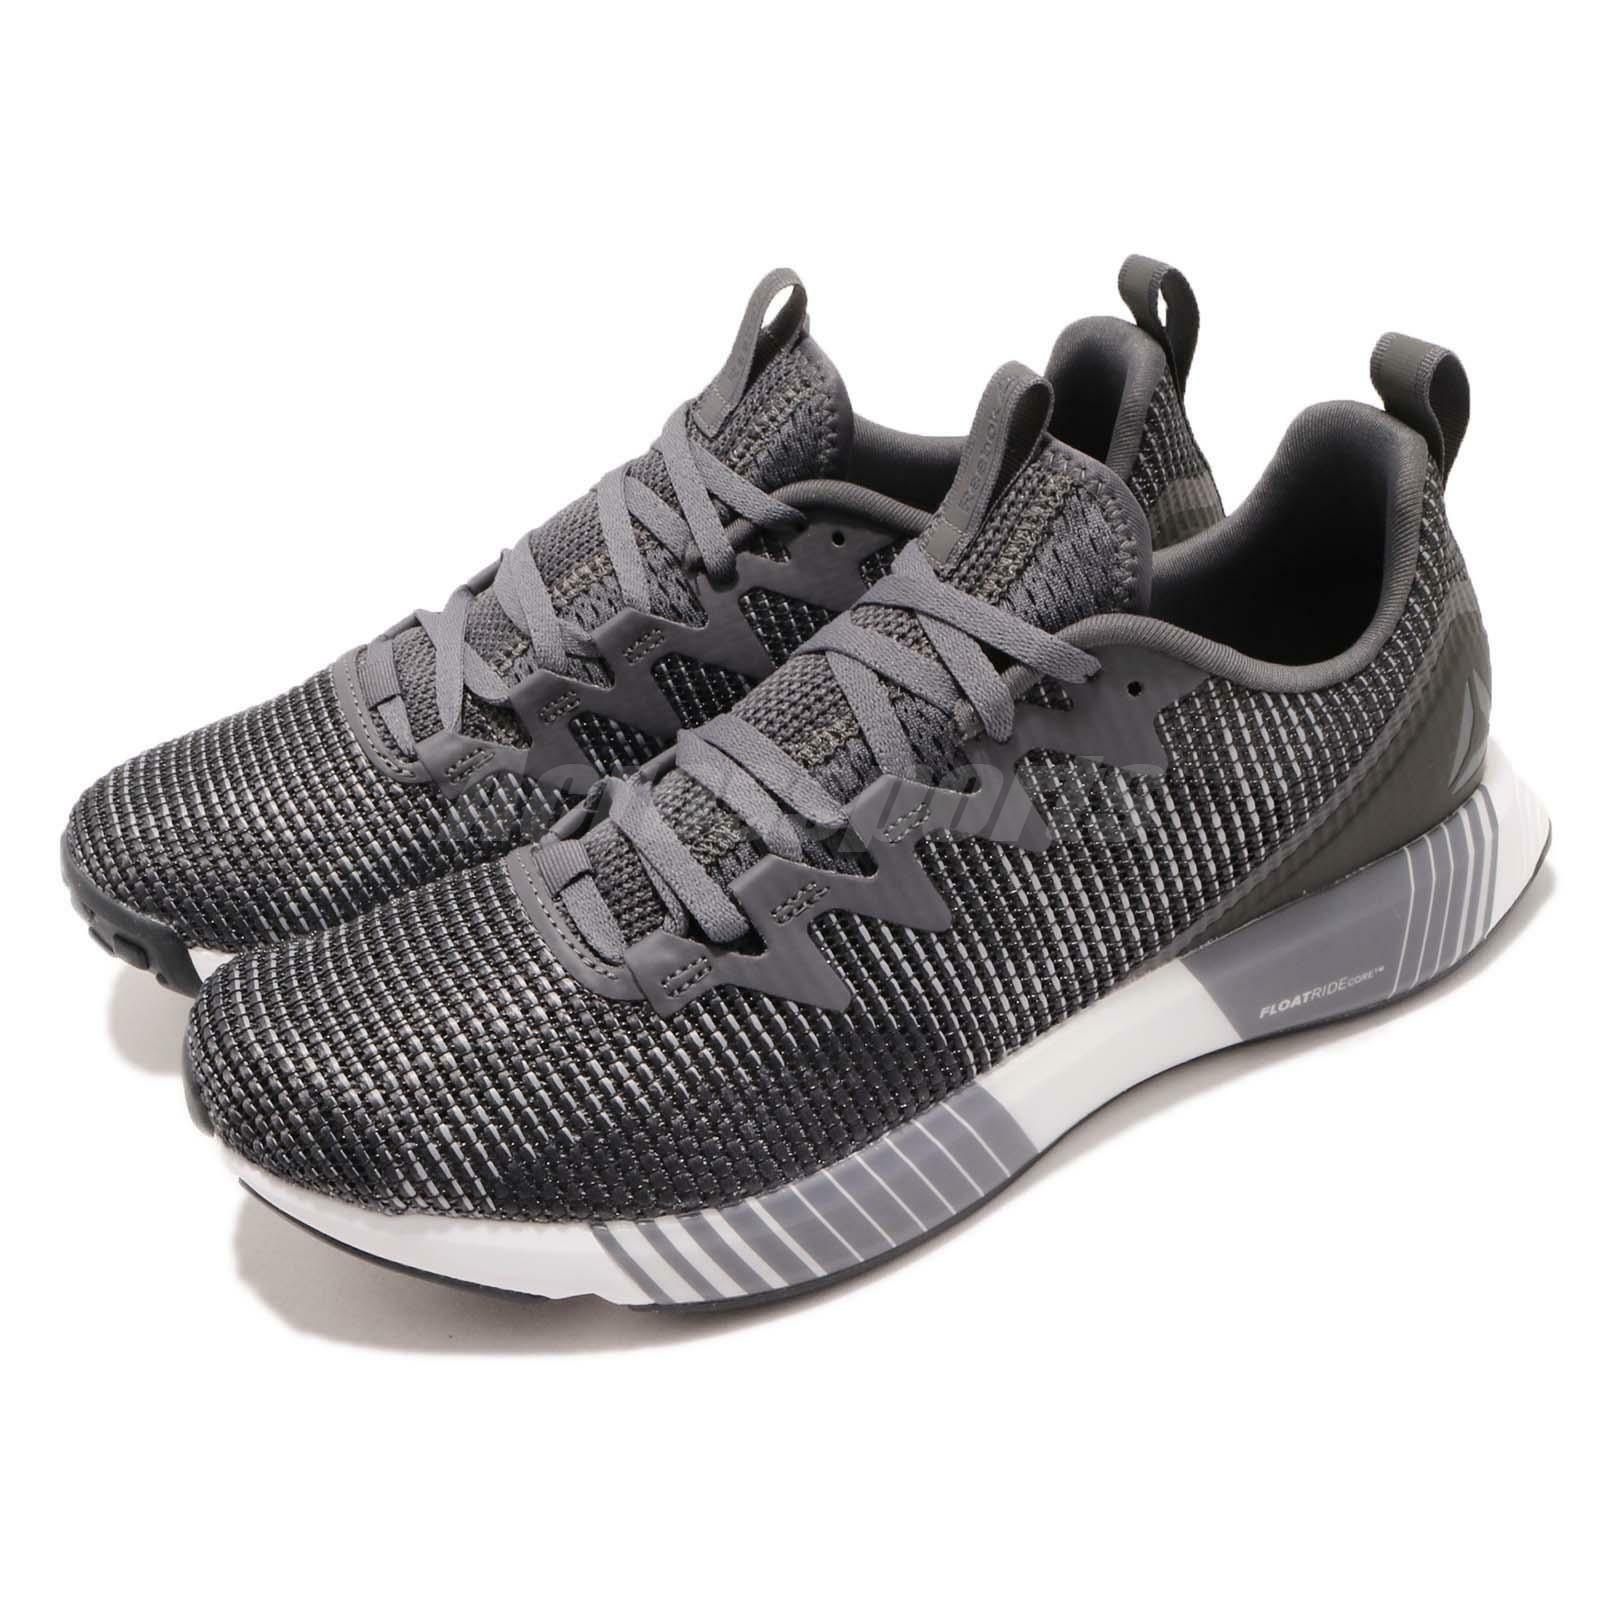 Reebok Fusion Flexweave Grey Coal White Men Running Training shoes Sneaker CN2854